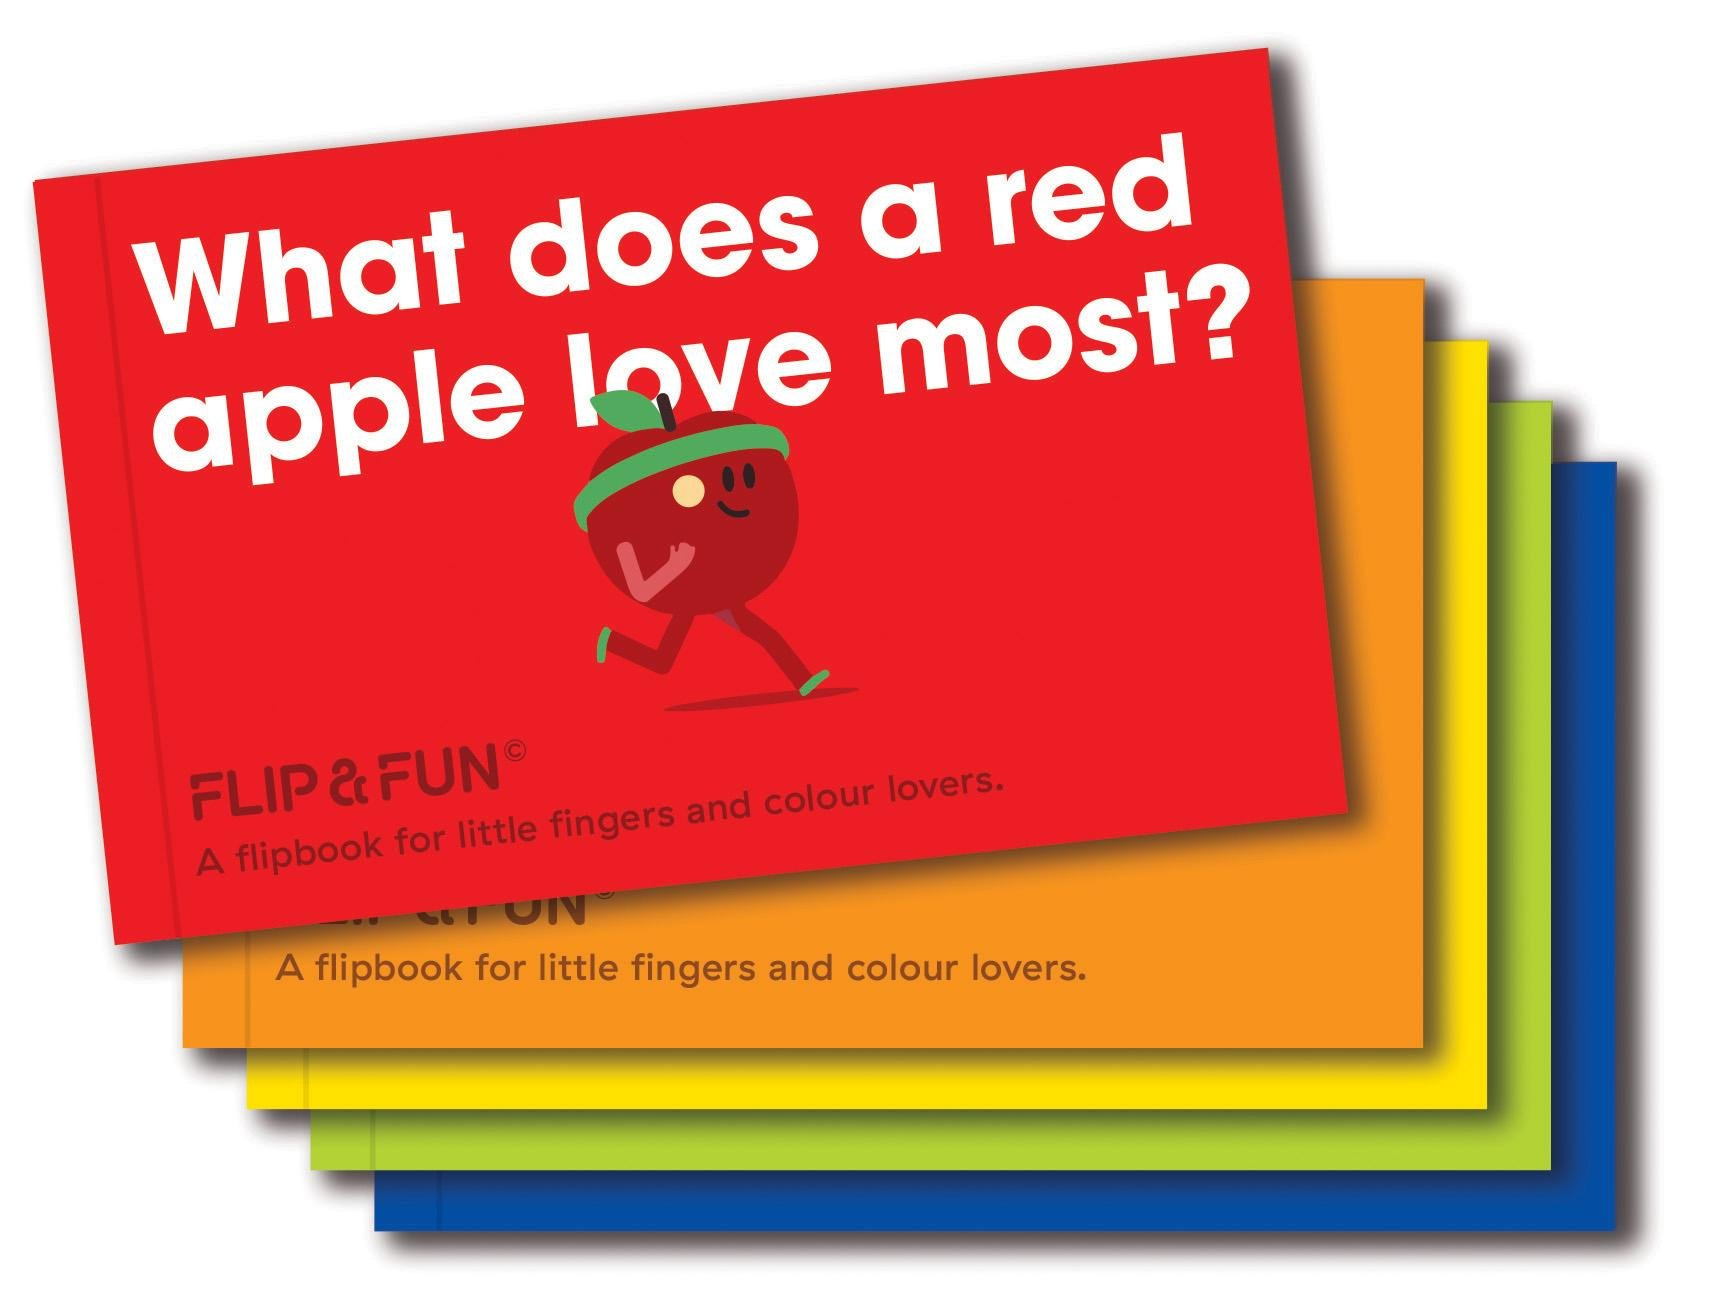 Flip & Fun Fruits: A Flipbook for Little Fingers and Colour Lovers pdf